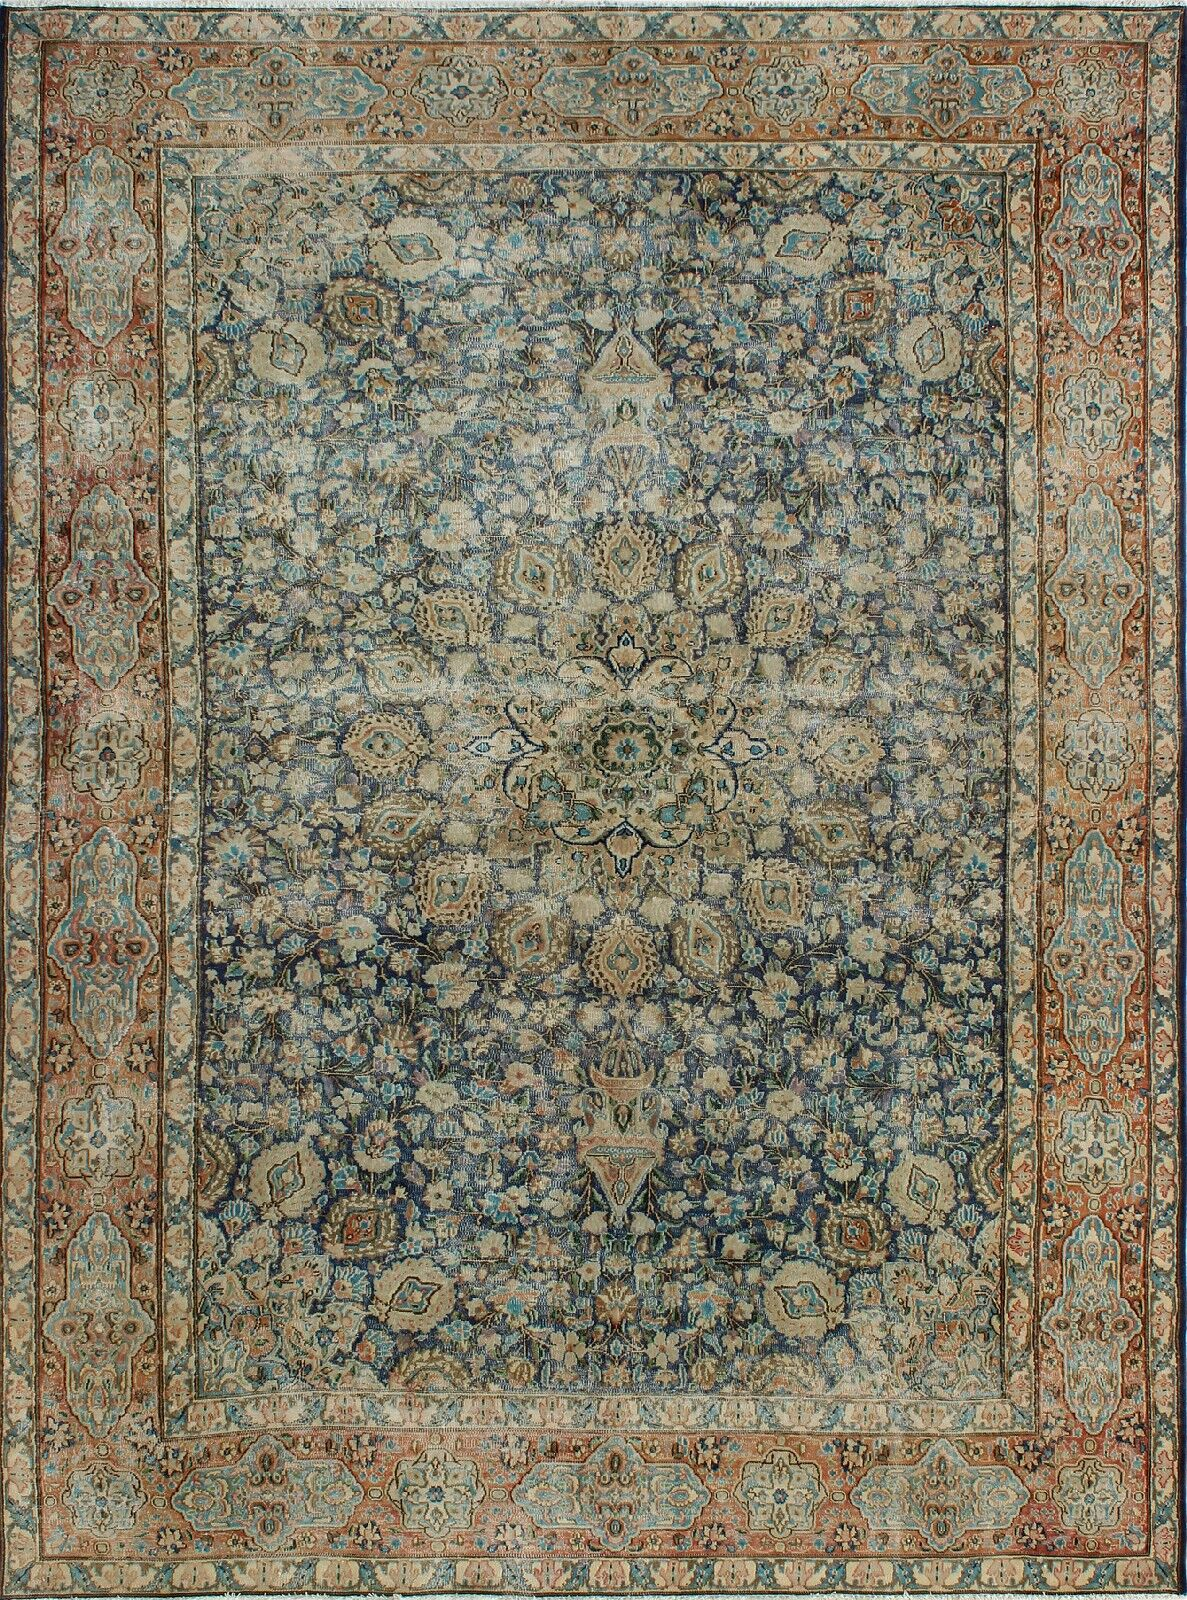 One-of-a-Kind Millner Distressed Nkosazana Hand-Knotted Wool Brown/Blue Are Rug